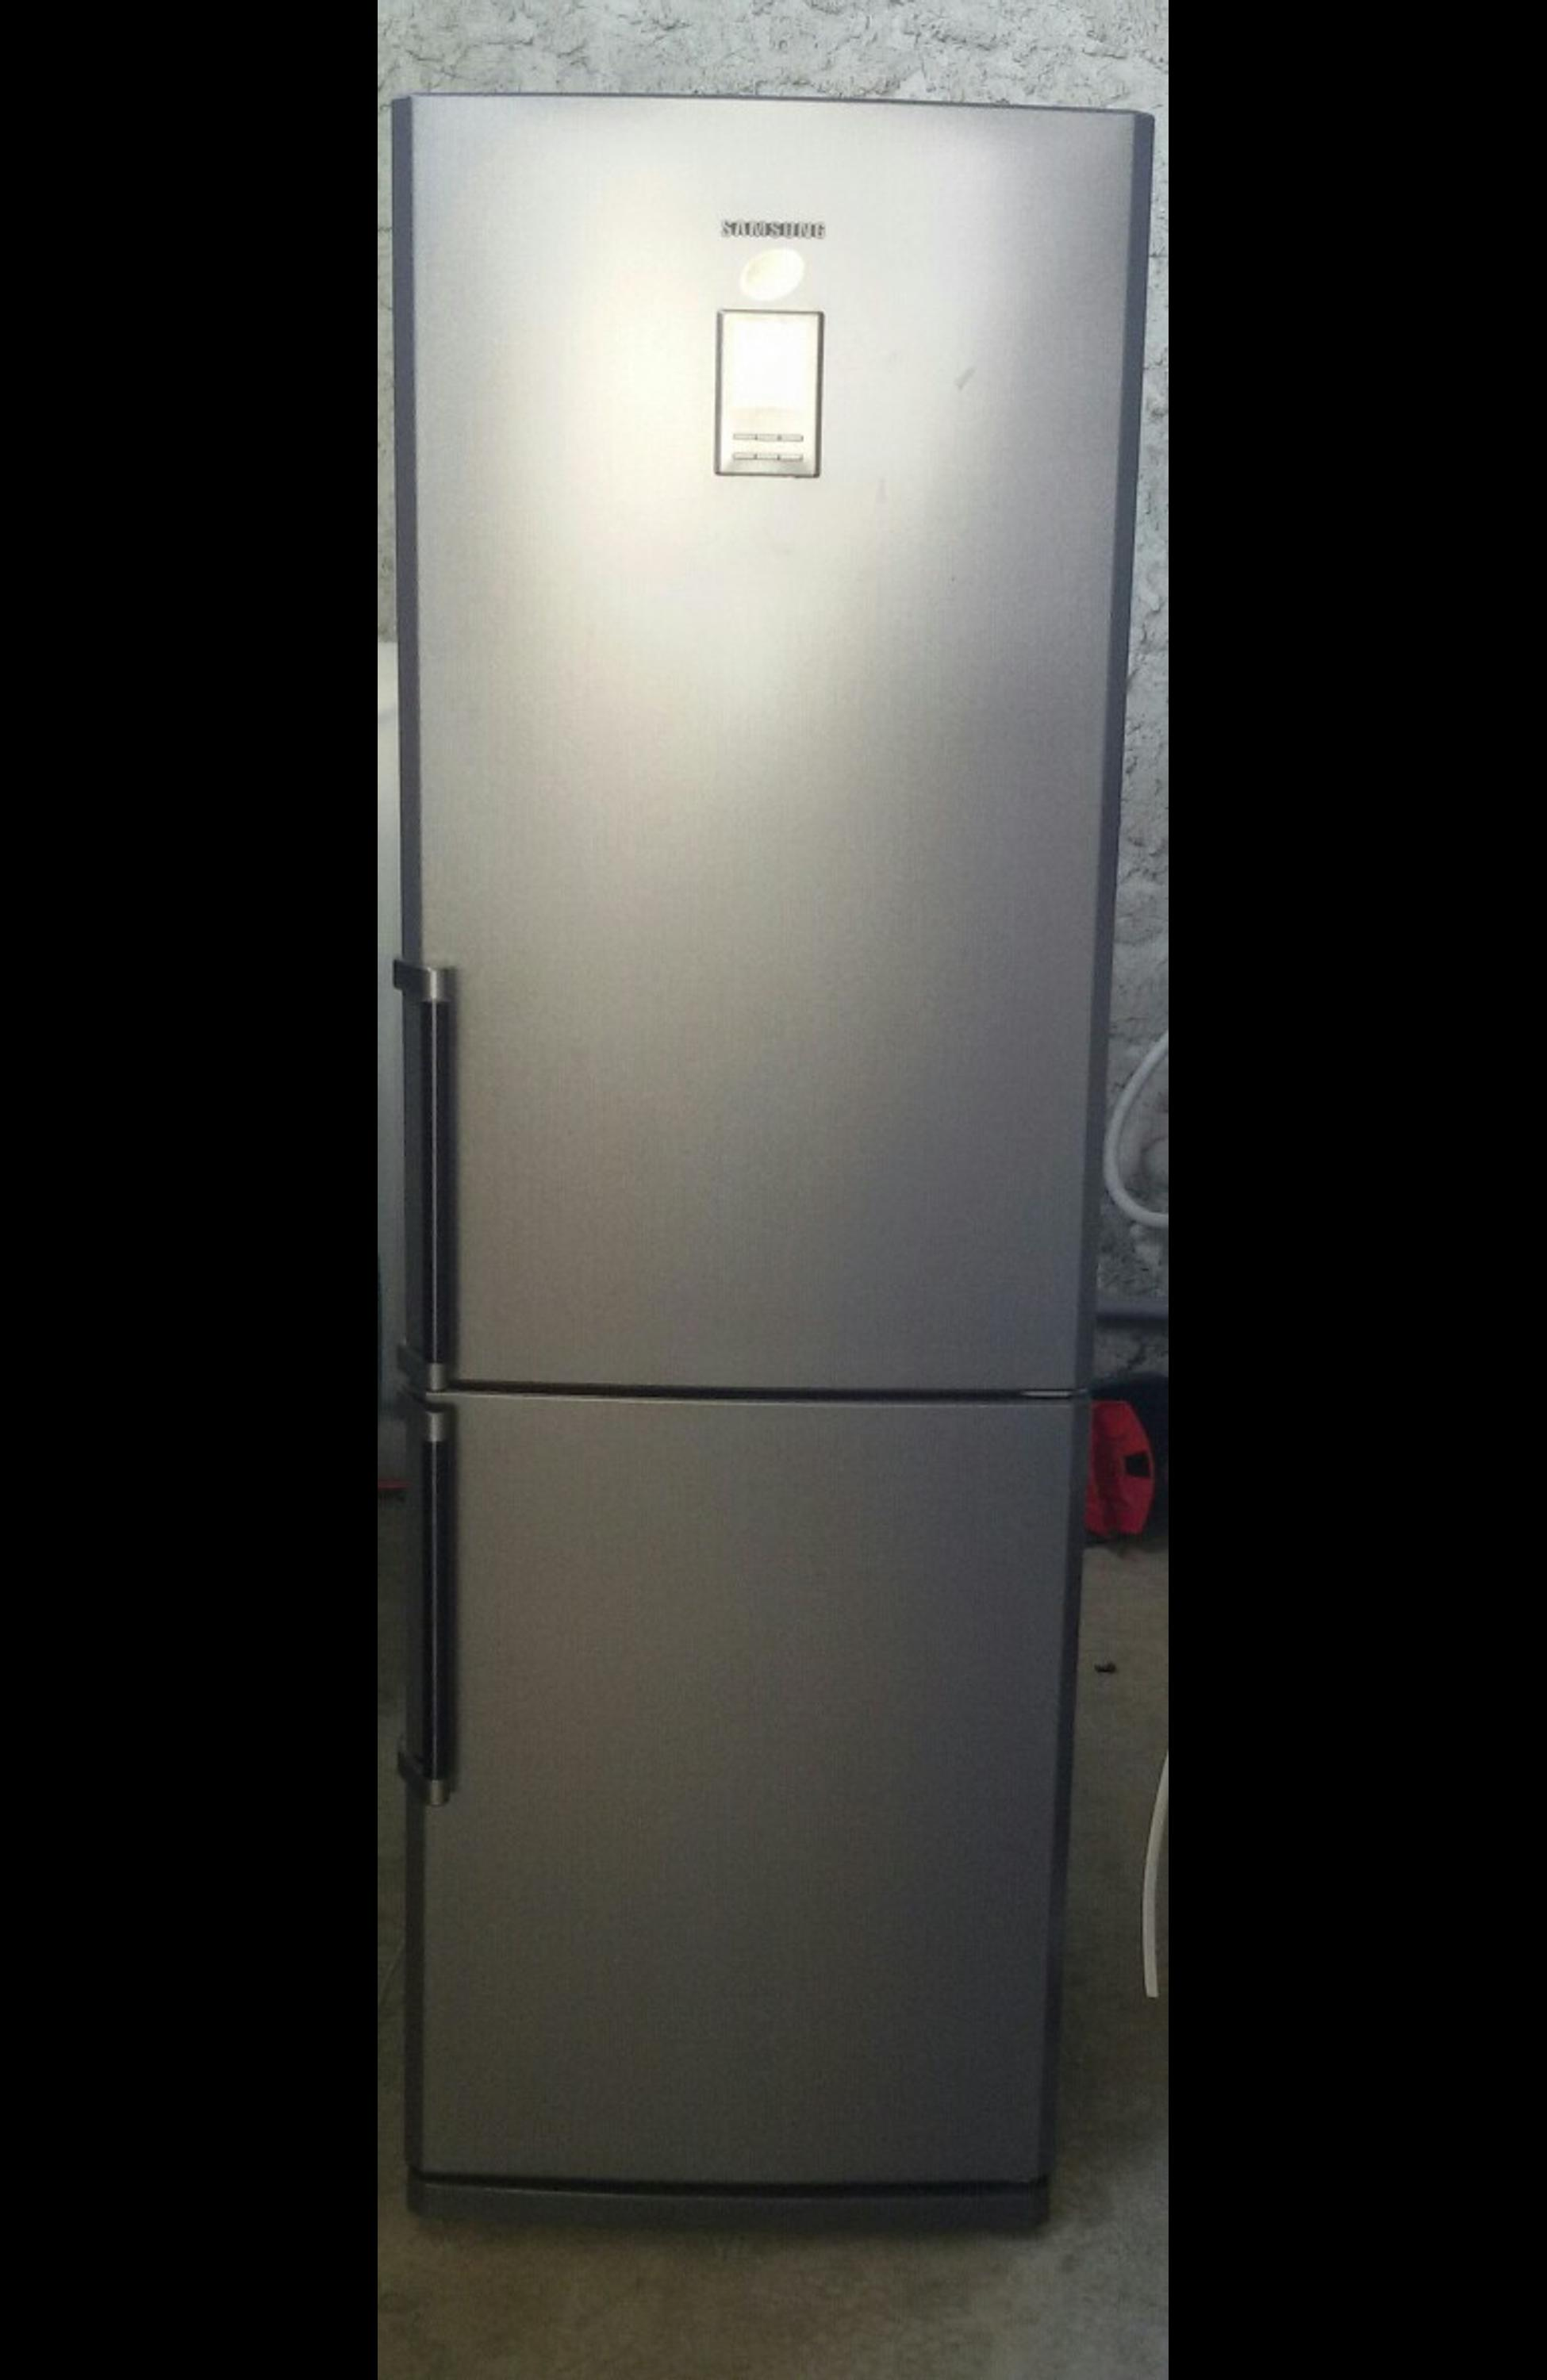 frigo samsung no frost in 43126 Parma for €250.00 for sale ...